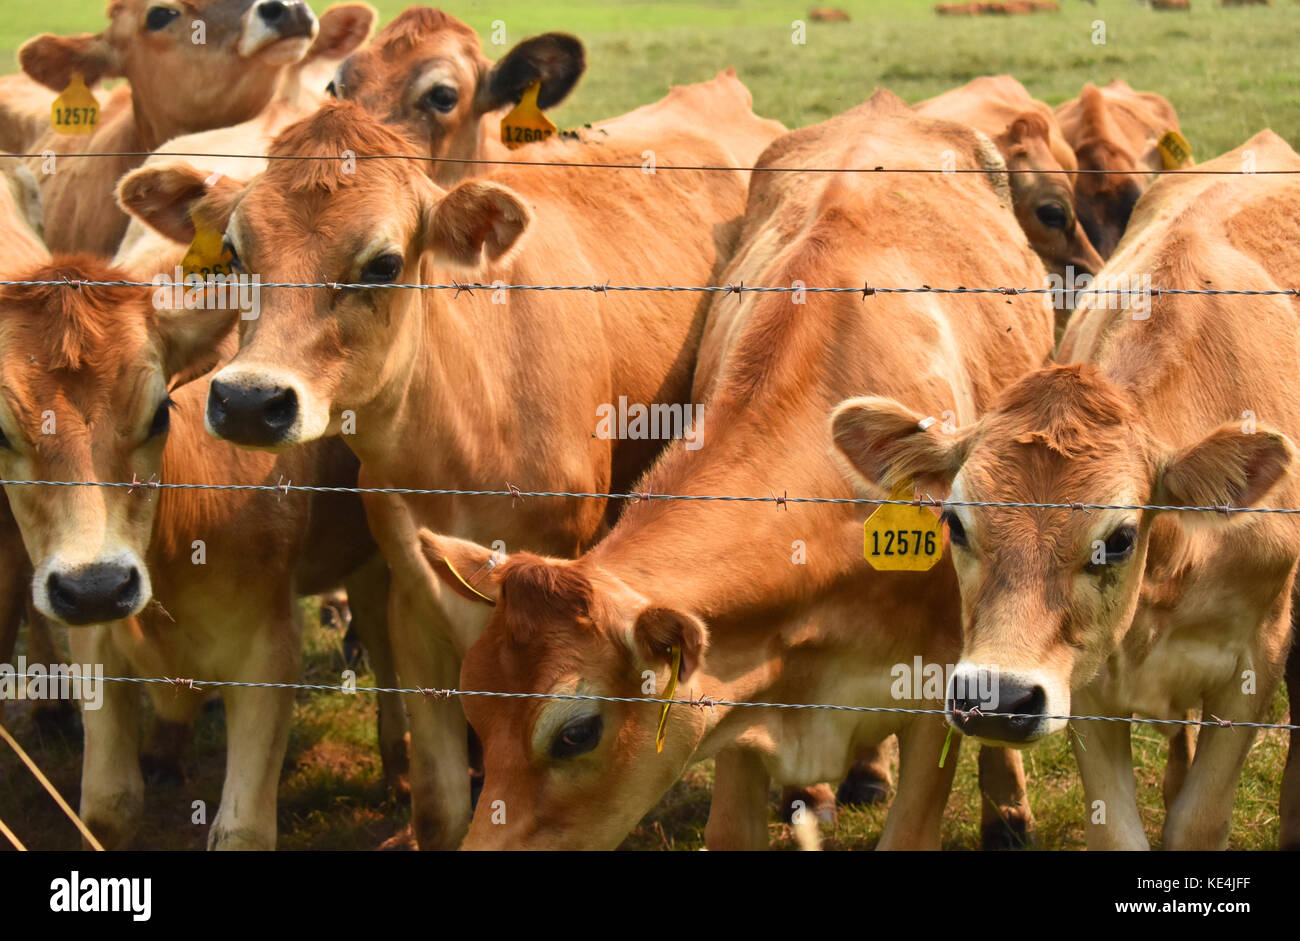 Cows at a barbed wired fence wearing identification tags - Stock Image